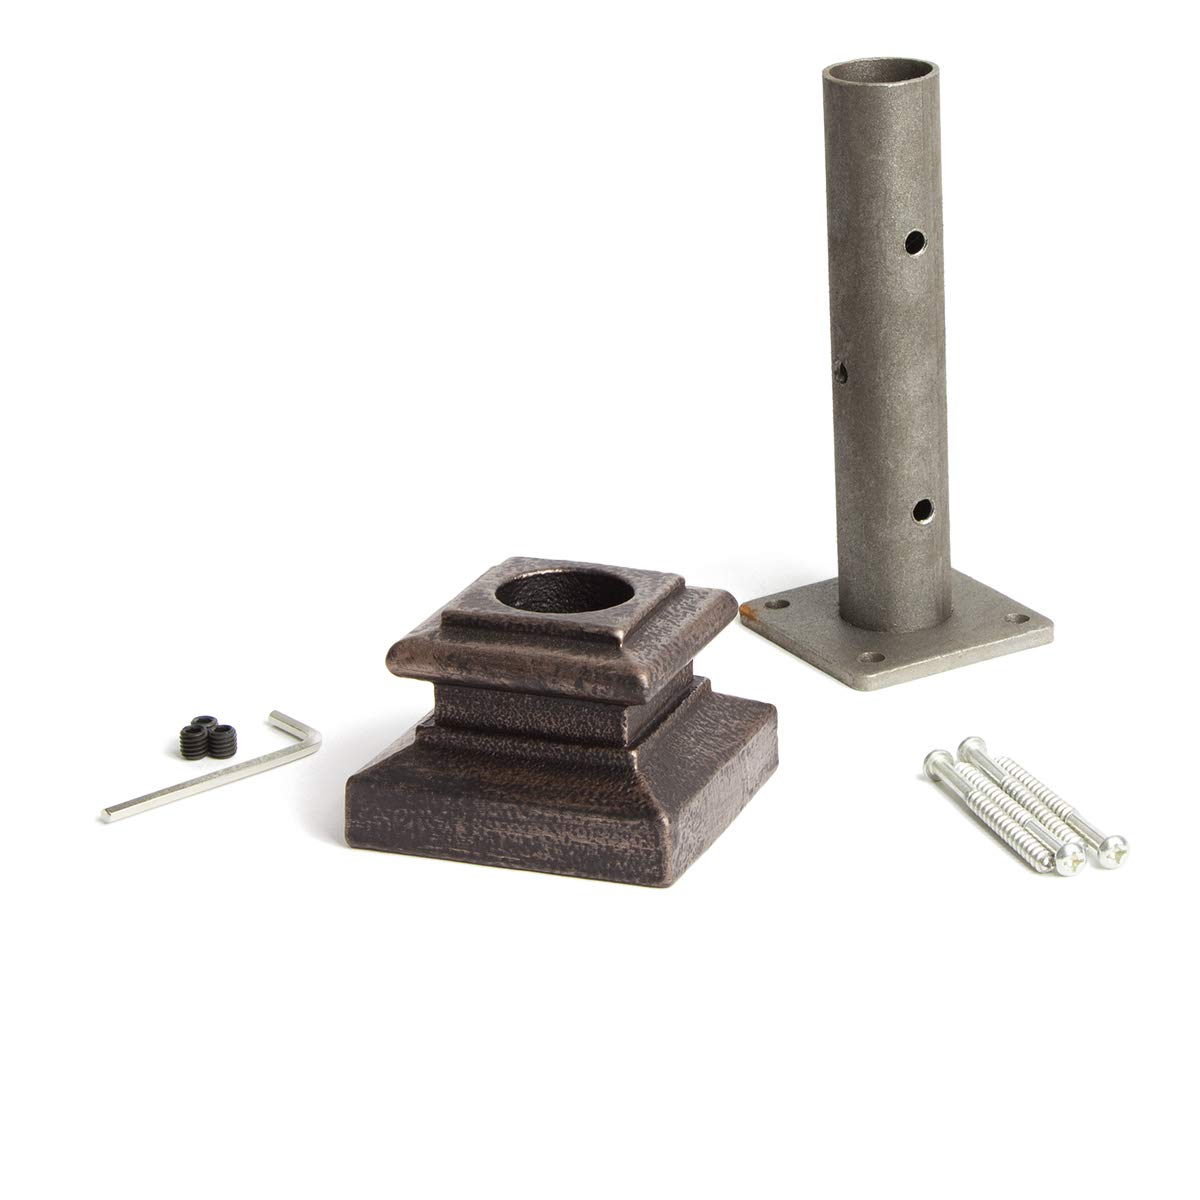 Oil Rubbed Bronze 16.3.14 Newel Mounting Kit for 1-3/16 inch Round Iron Newel Posts for Stair Remodeling by House of Forgings